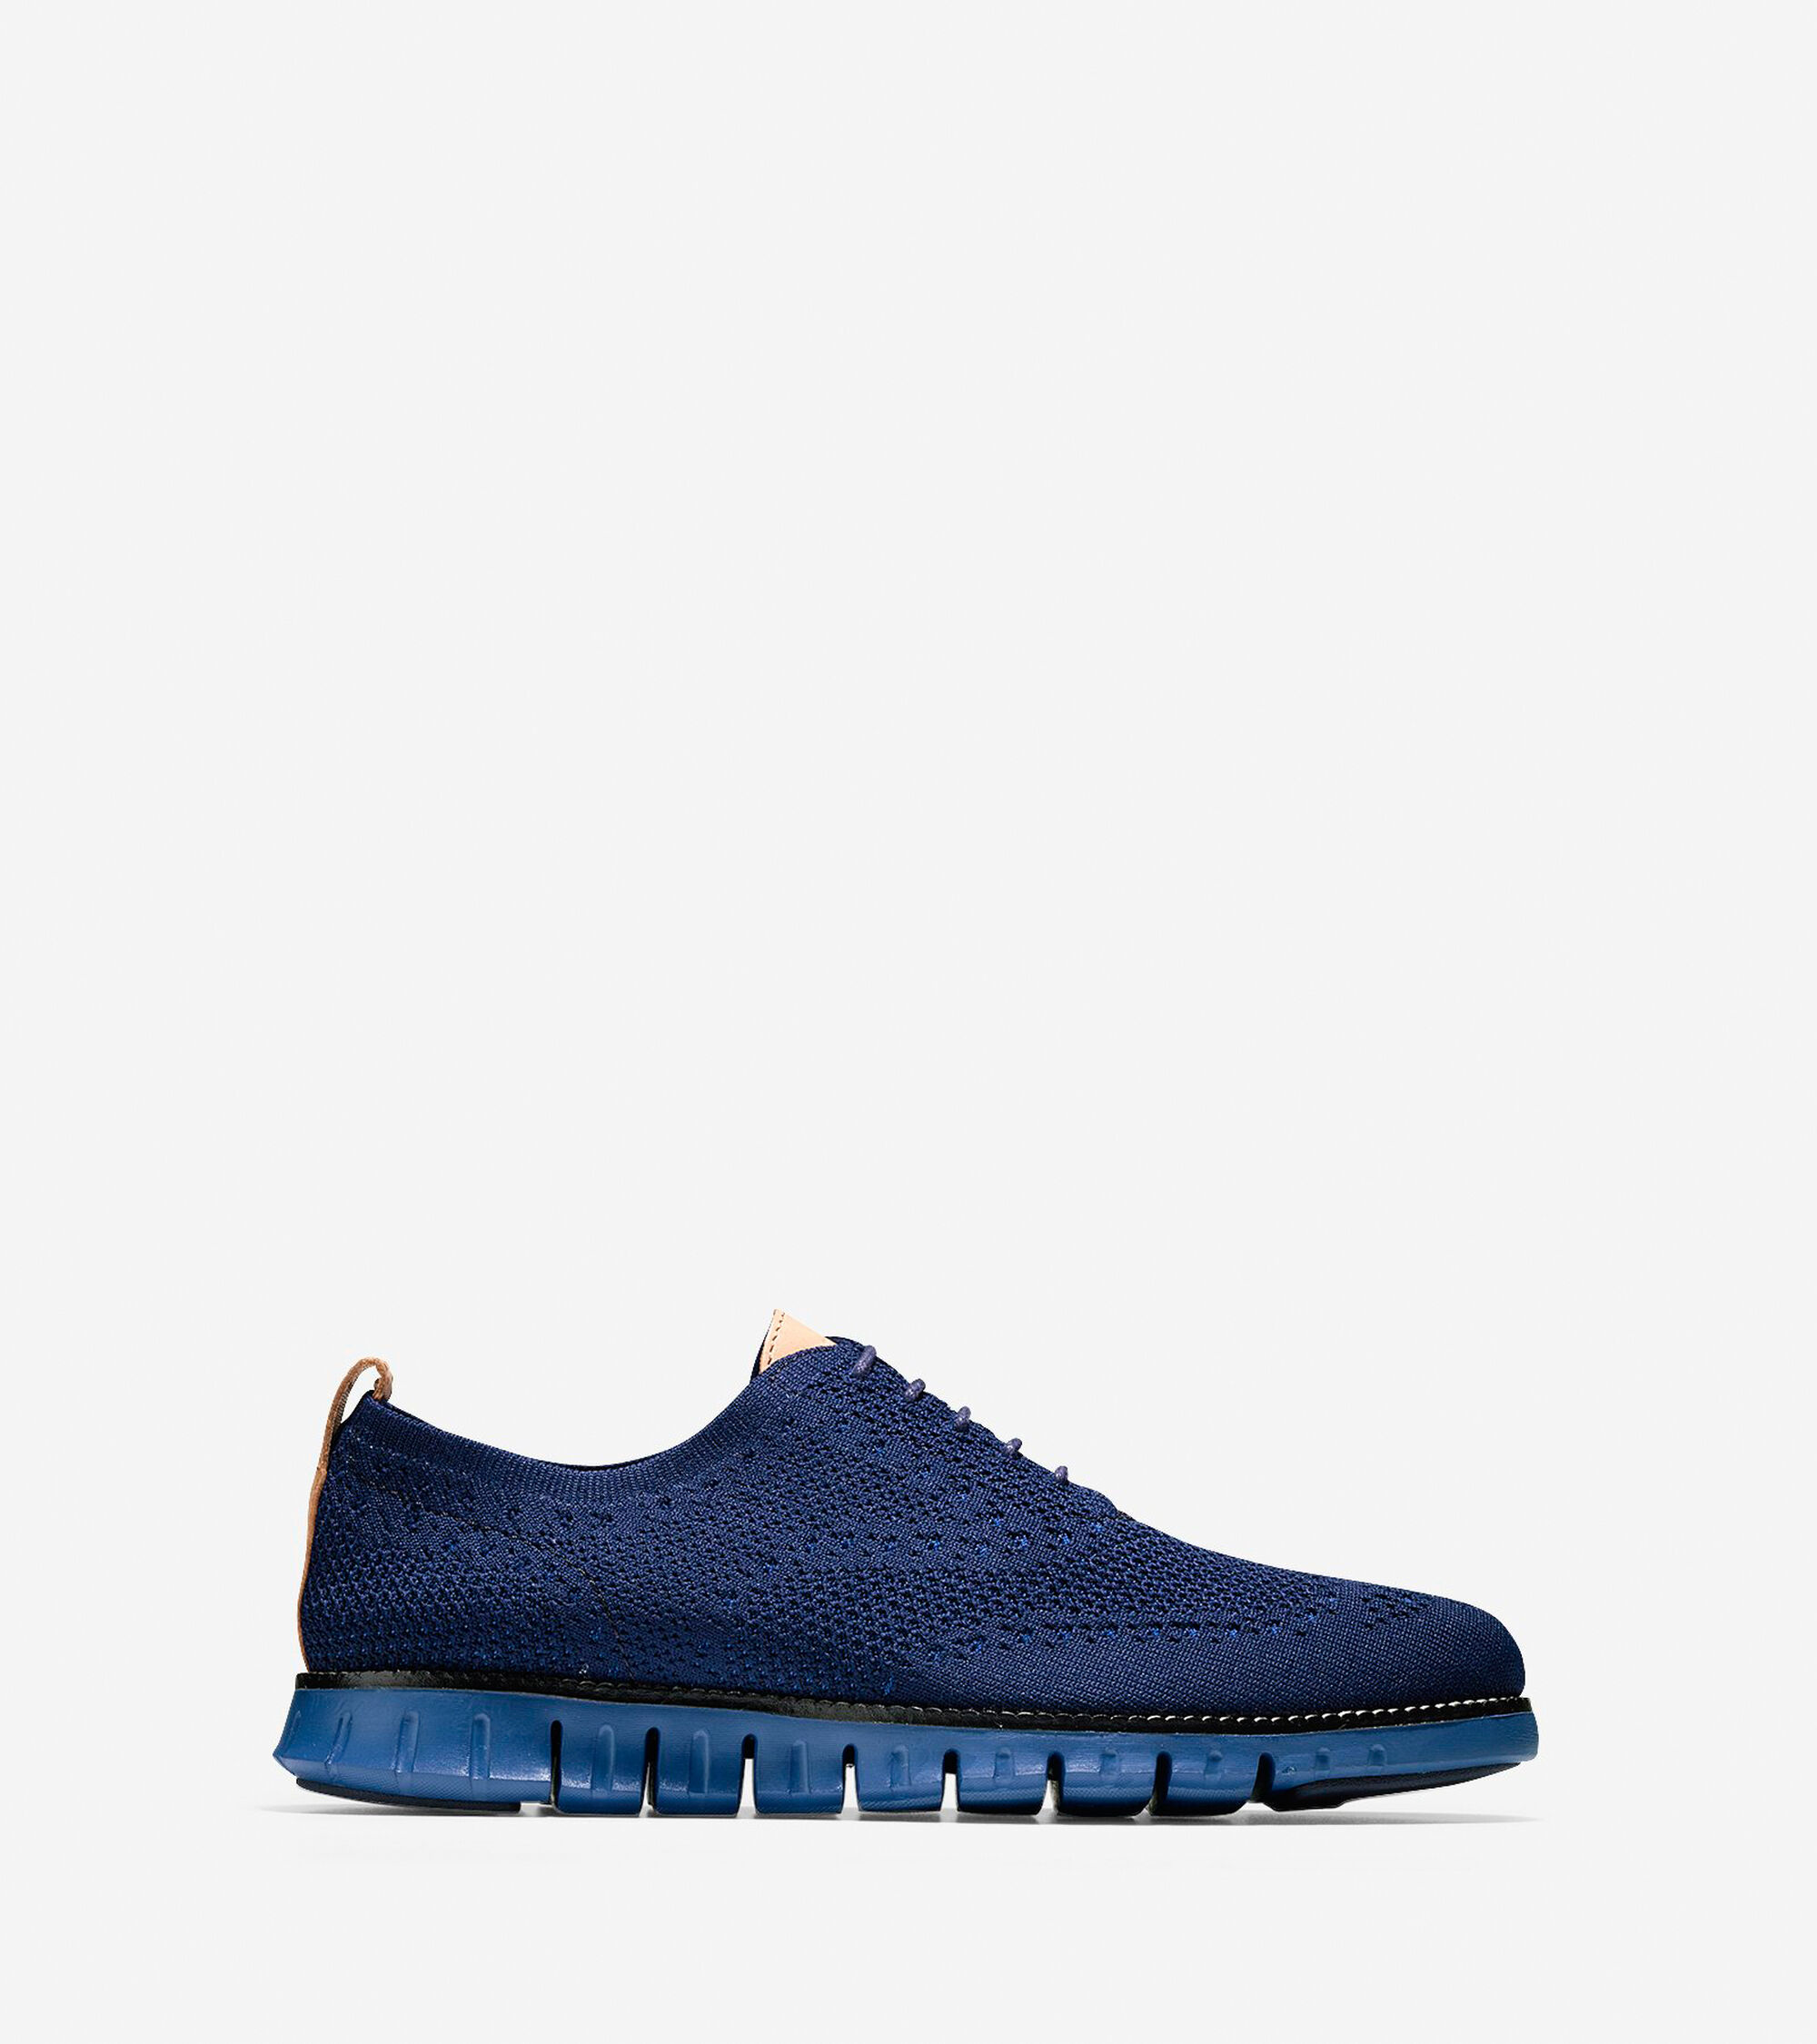 Cole Haan Men's ZEROGRAND Stitchlite Lined Wingtip Oxford Shoes